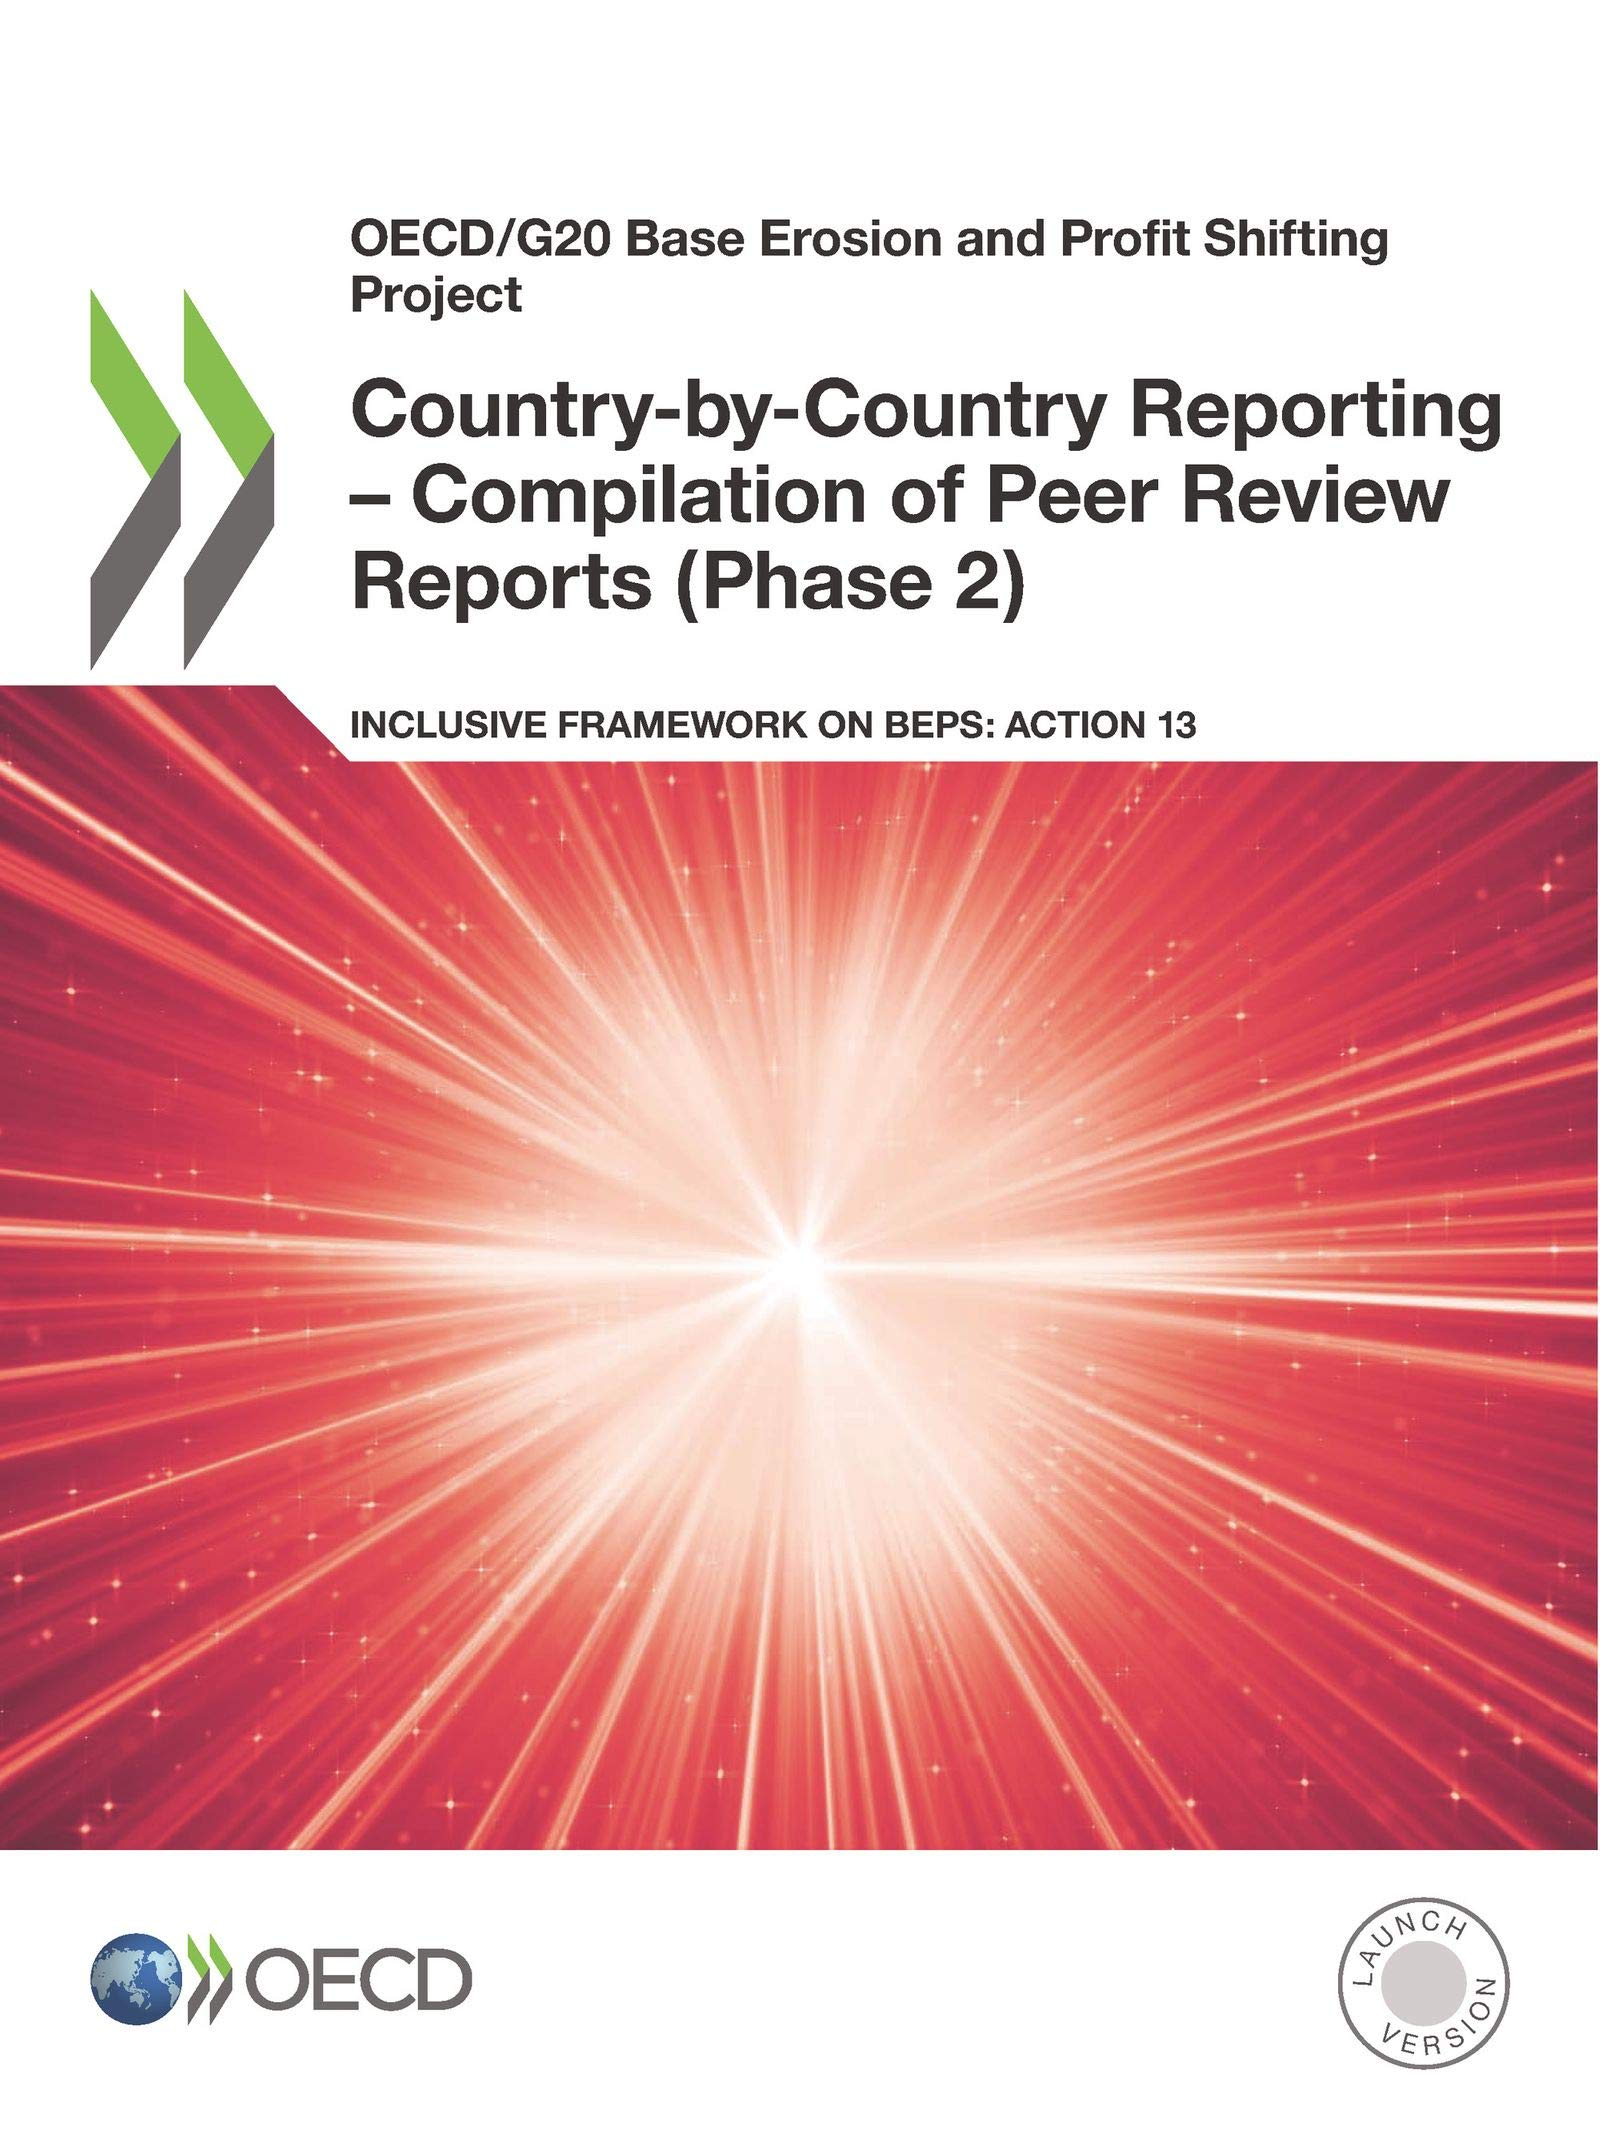 Buy Oecd G20 Base Erosion And Profit Shifting Project Country By Country Reporting Compilation Of Peer Review Reports Phase 2 Inclusive Framework On Beps Action 13 Book Online At Low Prices In India